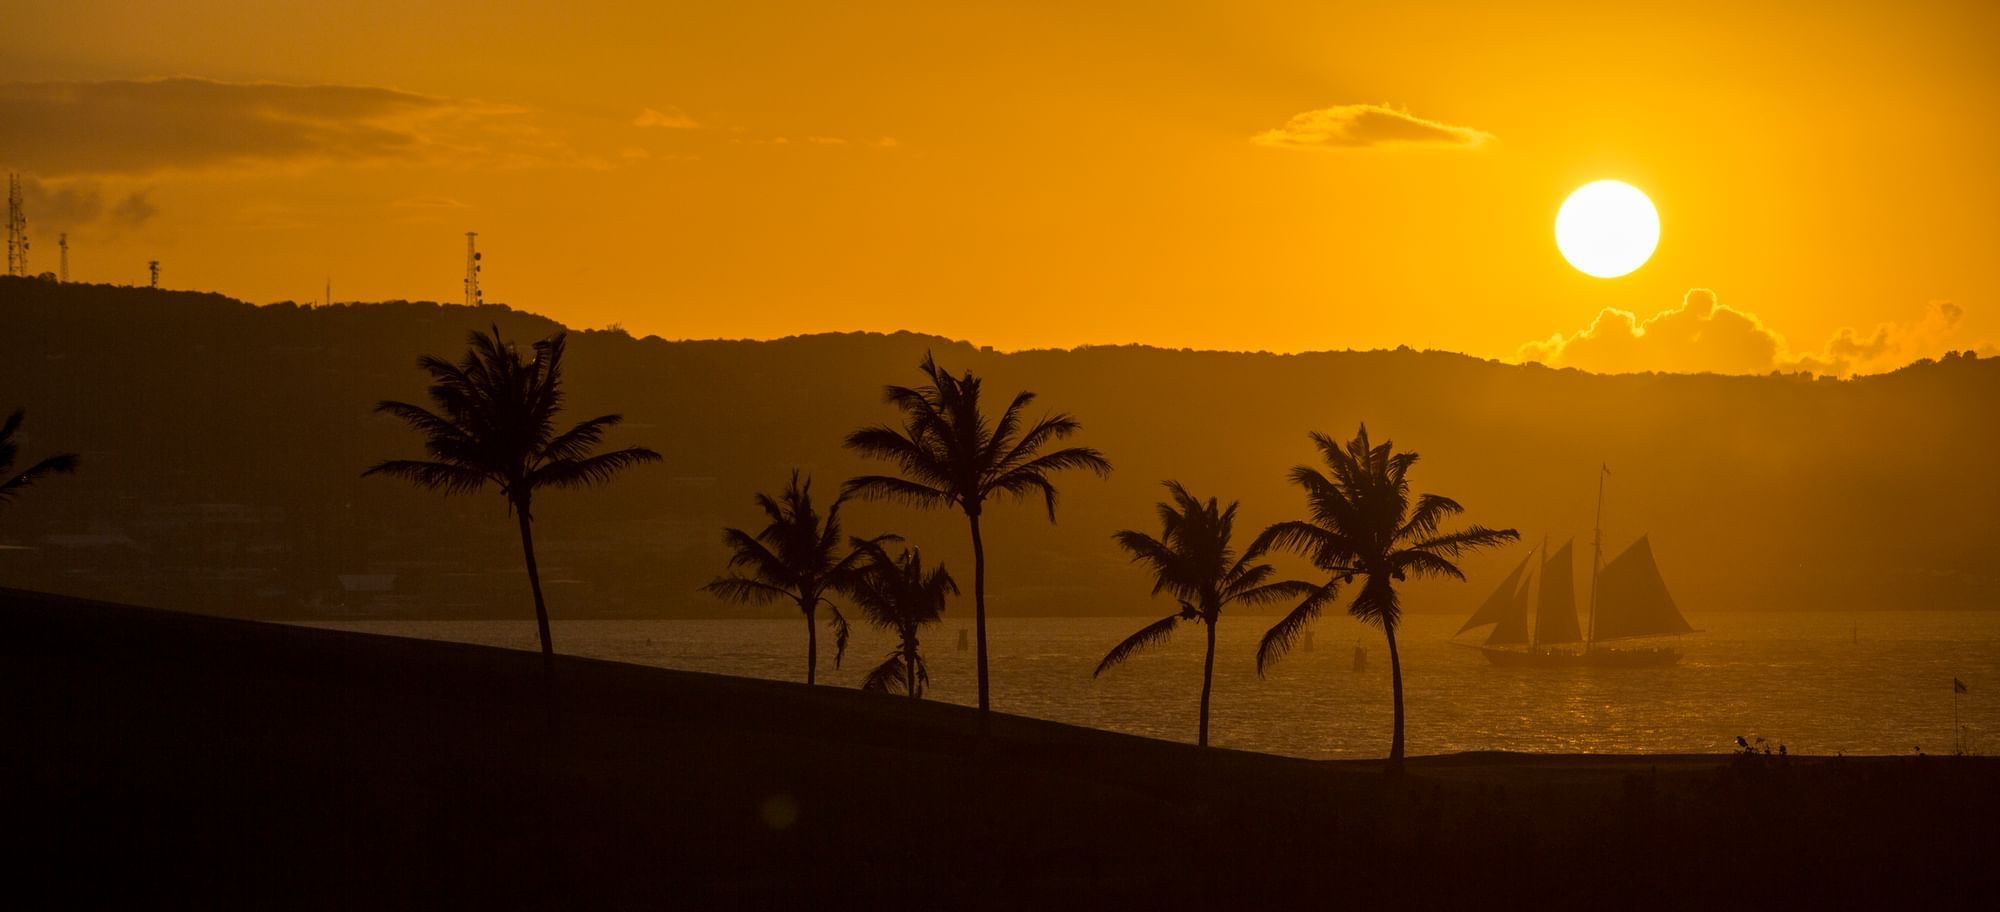 Beach with palm trees at sunset with ship coming in